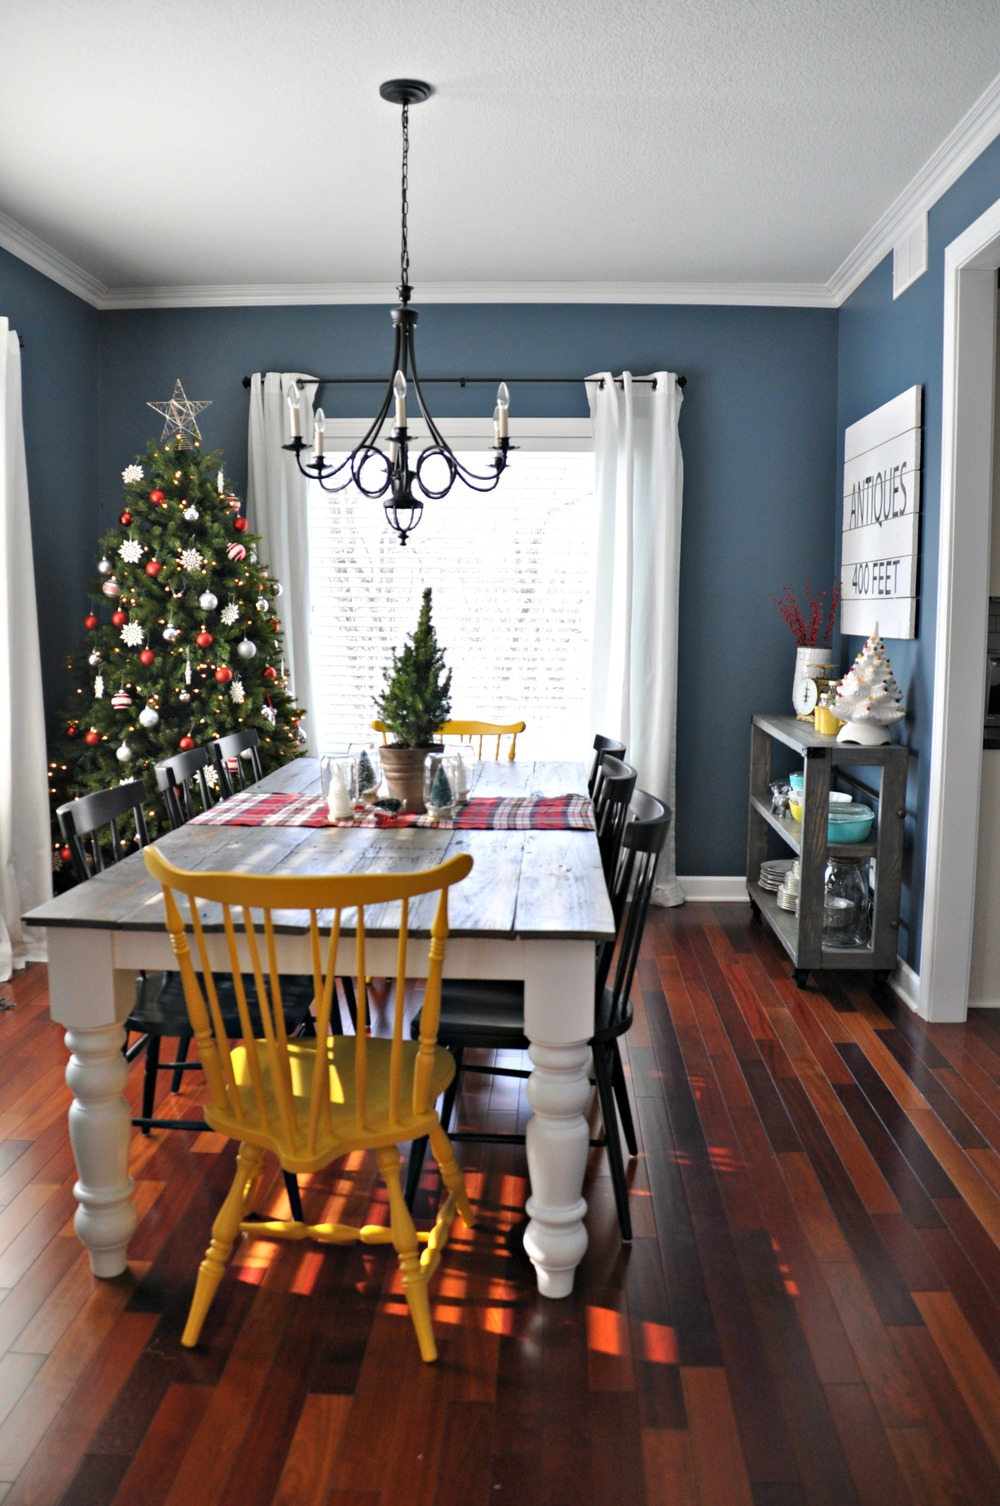 Wall Decorating For Christmas : Holiday home tour dining kitchen decor and the dog